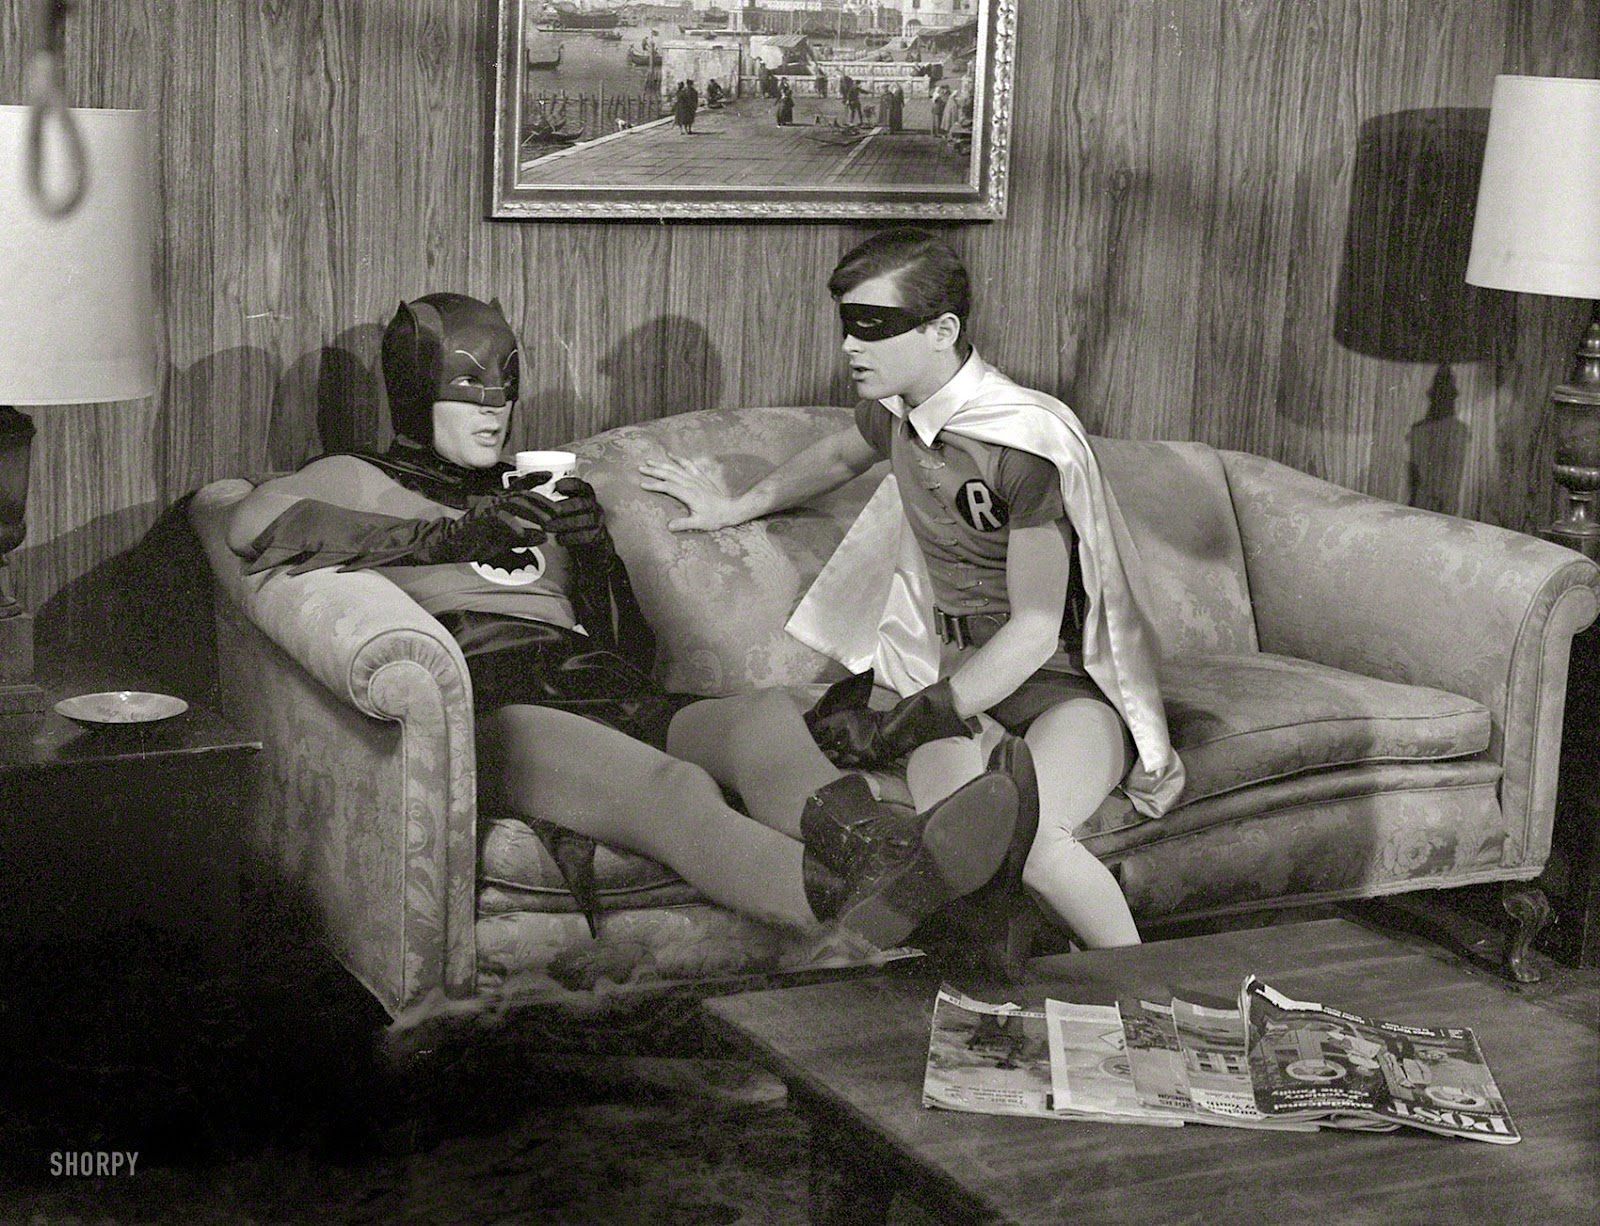 Actors+Adam+West+and+Burt+Ward+on+the+set+of+the+movie+Batman+(3)